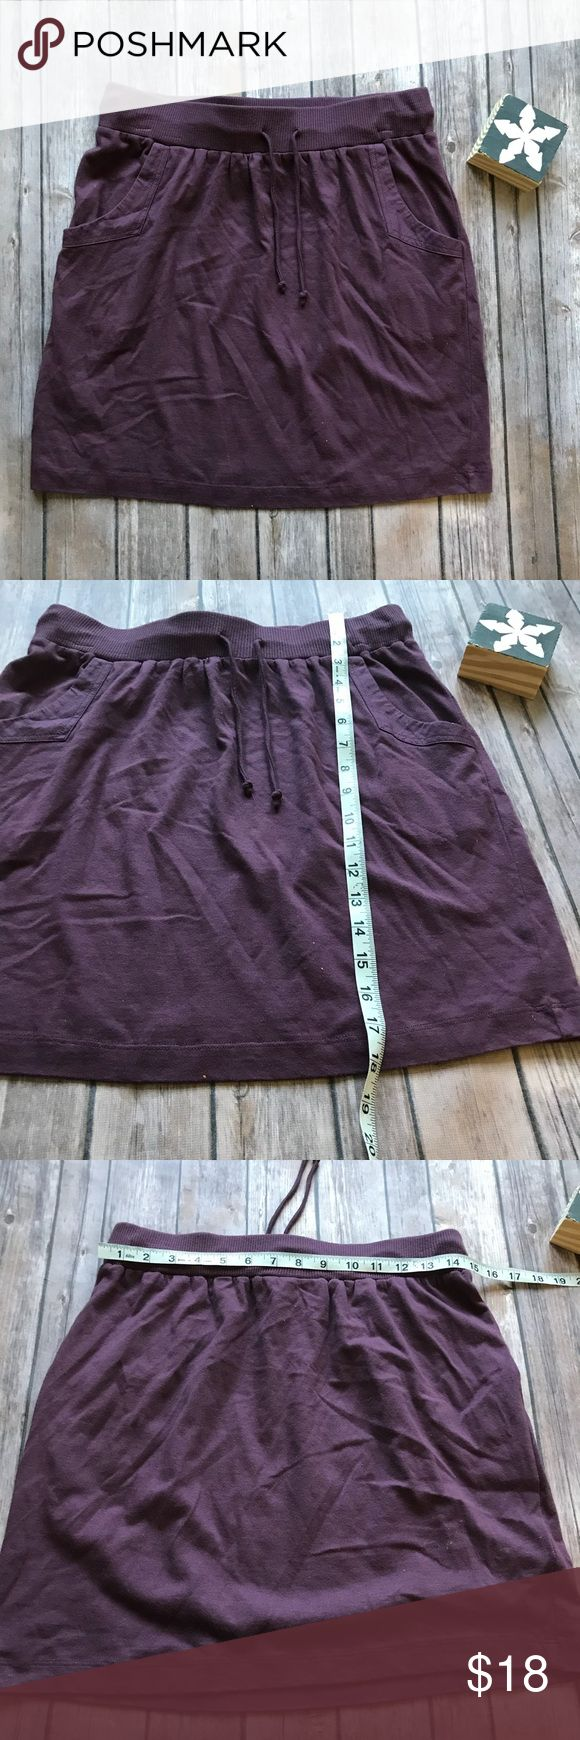 LOFT Cotton Plum Skirt Size XS Like new comfy cotton jogger style skirt from LOFT in a plum color. Perfect for casual wear or can be dressed up! LOFT Skirts